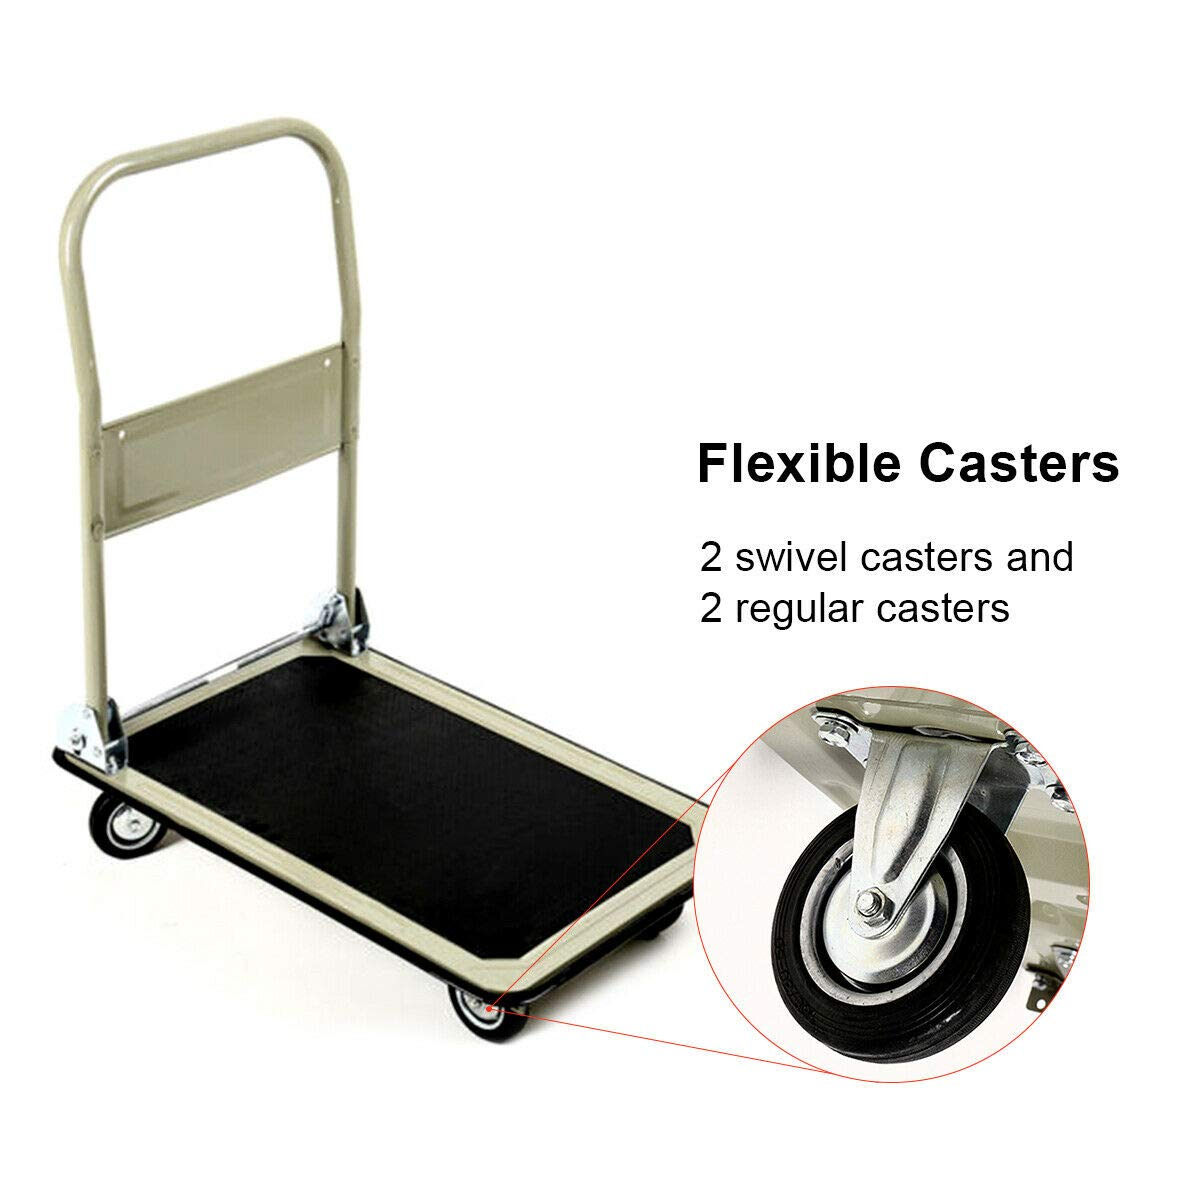 Gray 330lbs Platform Cart Folding Foldable Dolly Push Hand Truck Moving Warehouse Transport Heavy Large Loads(U.S. Stock) by Heize best price (Image #5)